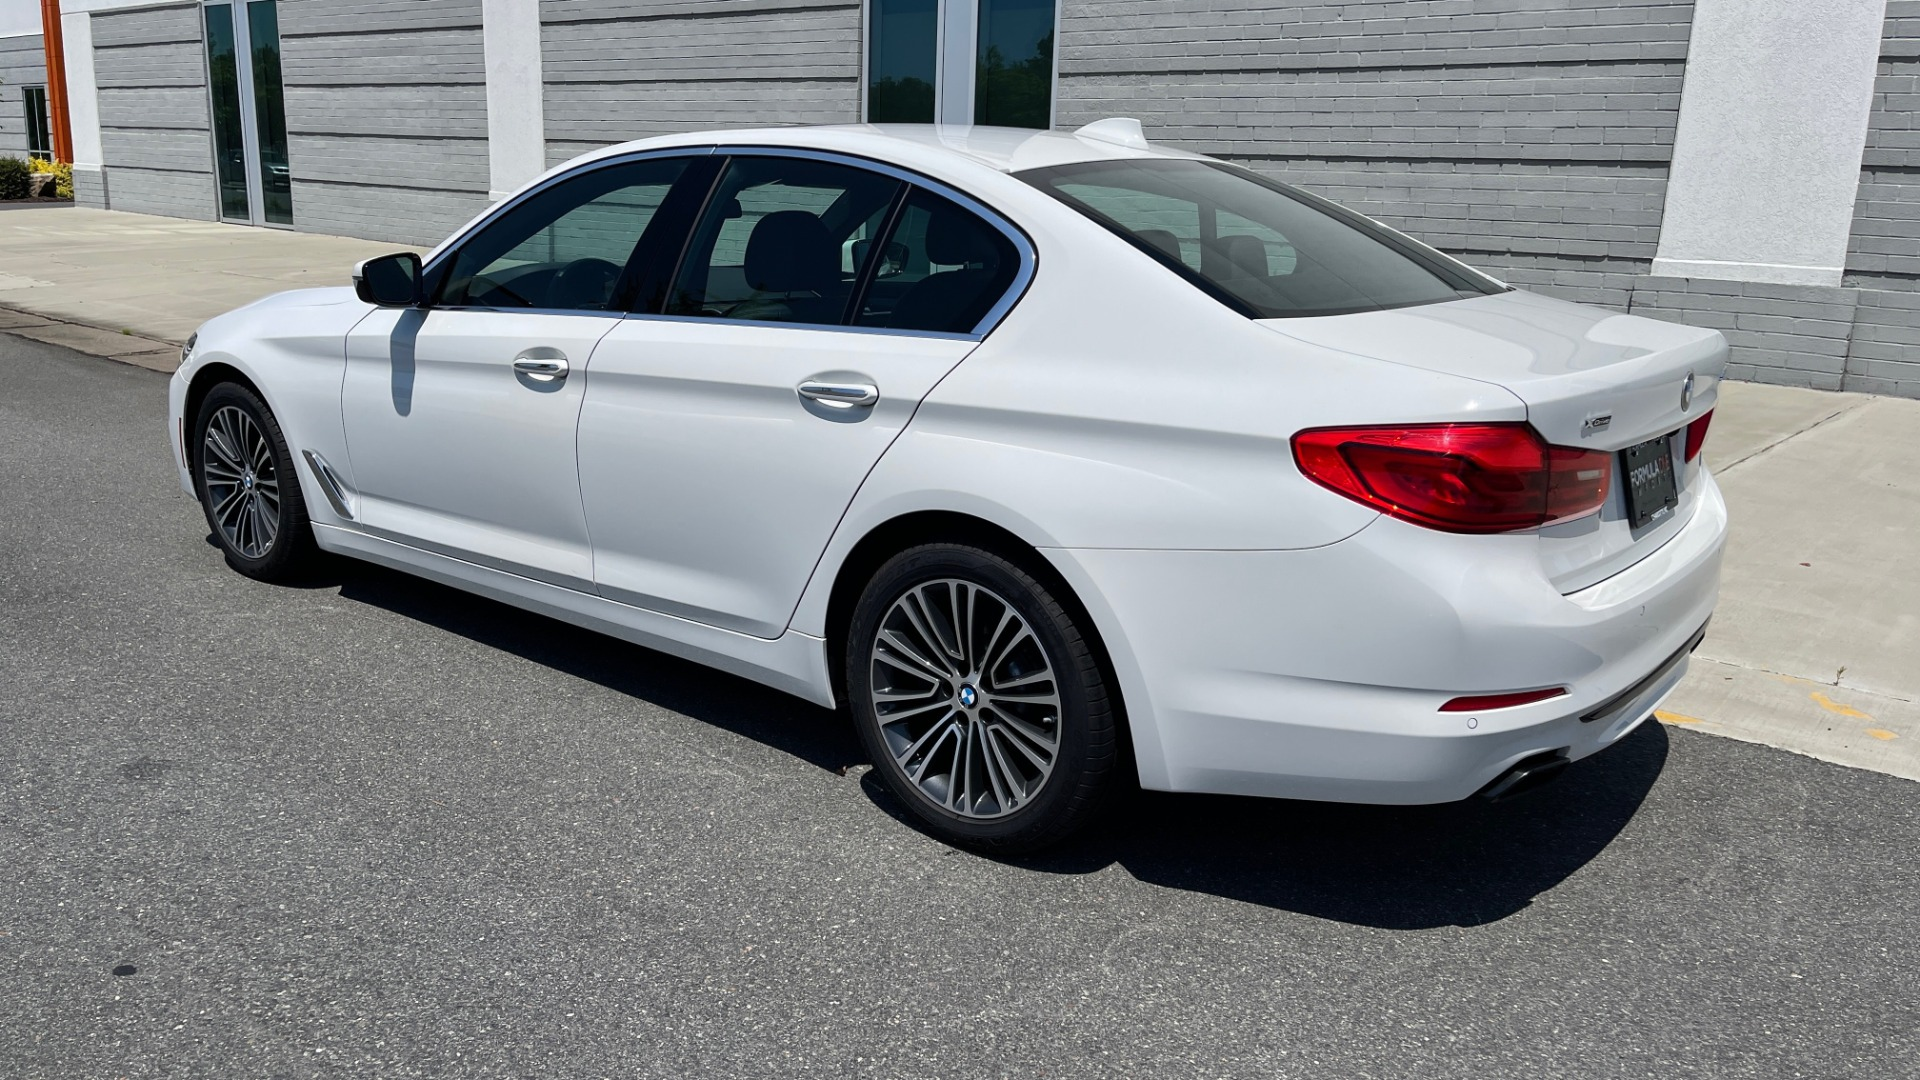 Used 2018 BMW 5 SERIES 540IXDRIVE PREMIUM / PARK ASSIST / KEYLESS ENTRY / SUNROOF / REARVIEW for sale $42,995 at Formula Imports in Charlotte NC 28227 5